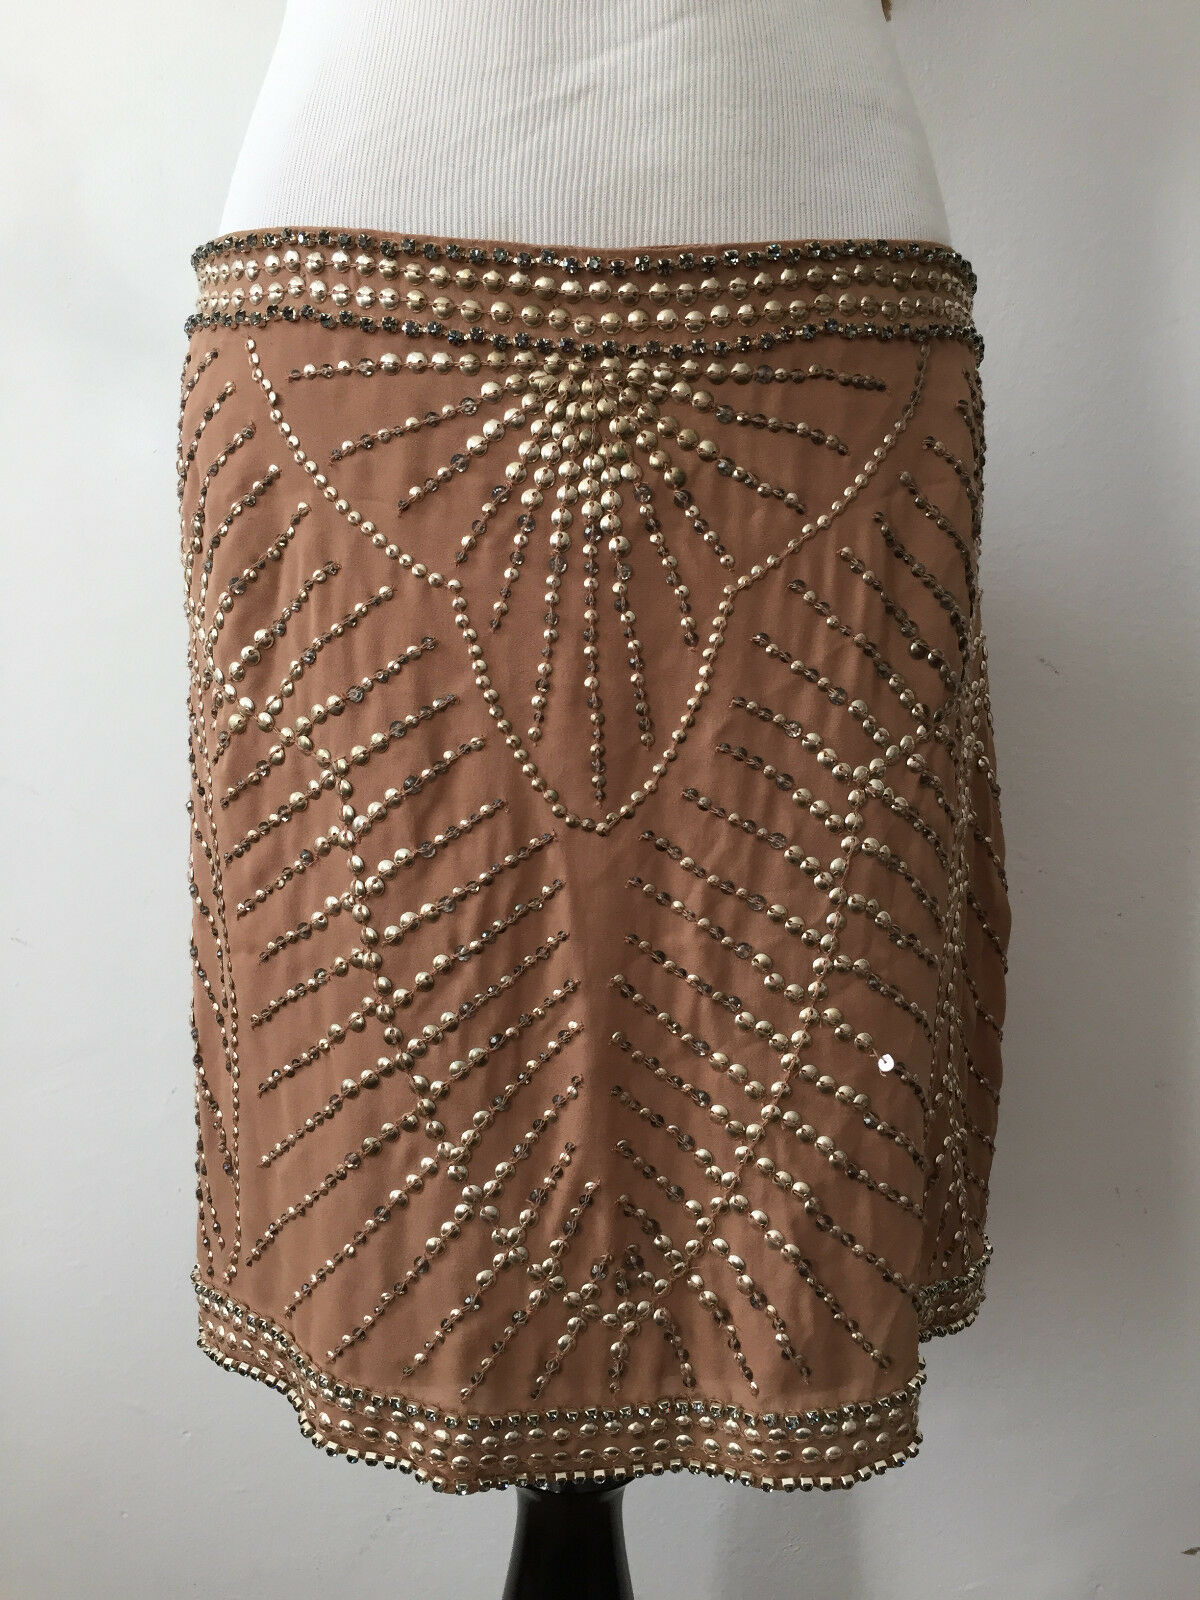 595.00 New Haute Hippie Beaded Mini Beige Skirt Size Small RARE